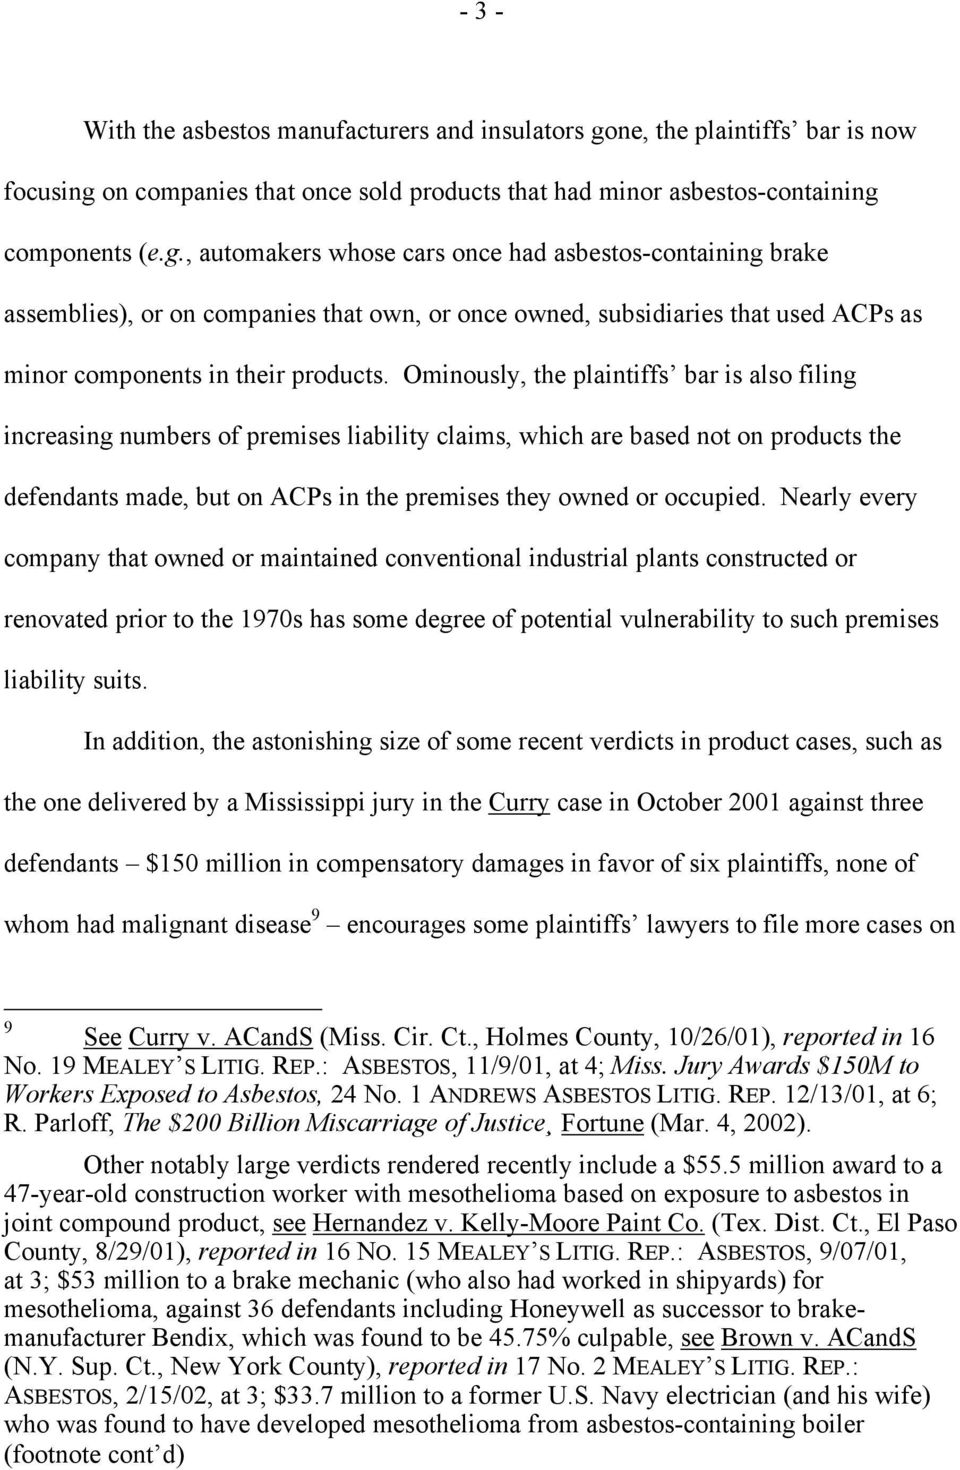 on companies that once sold products that had minor asbestos-containing